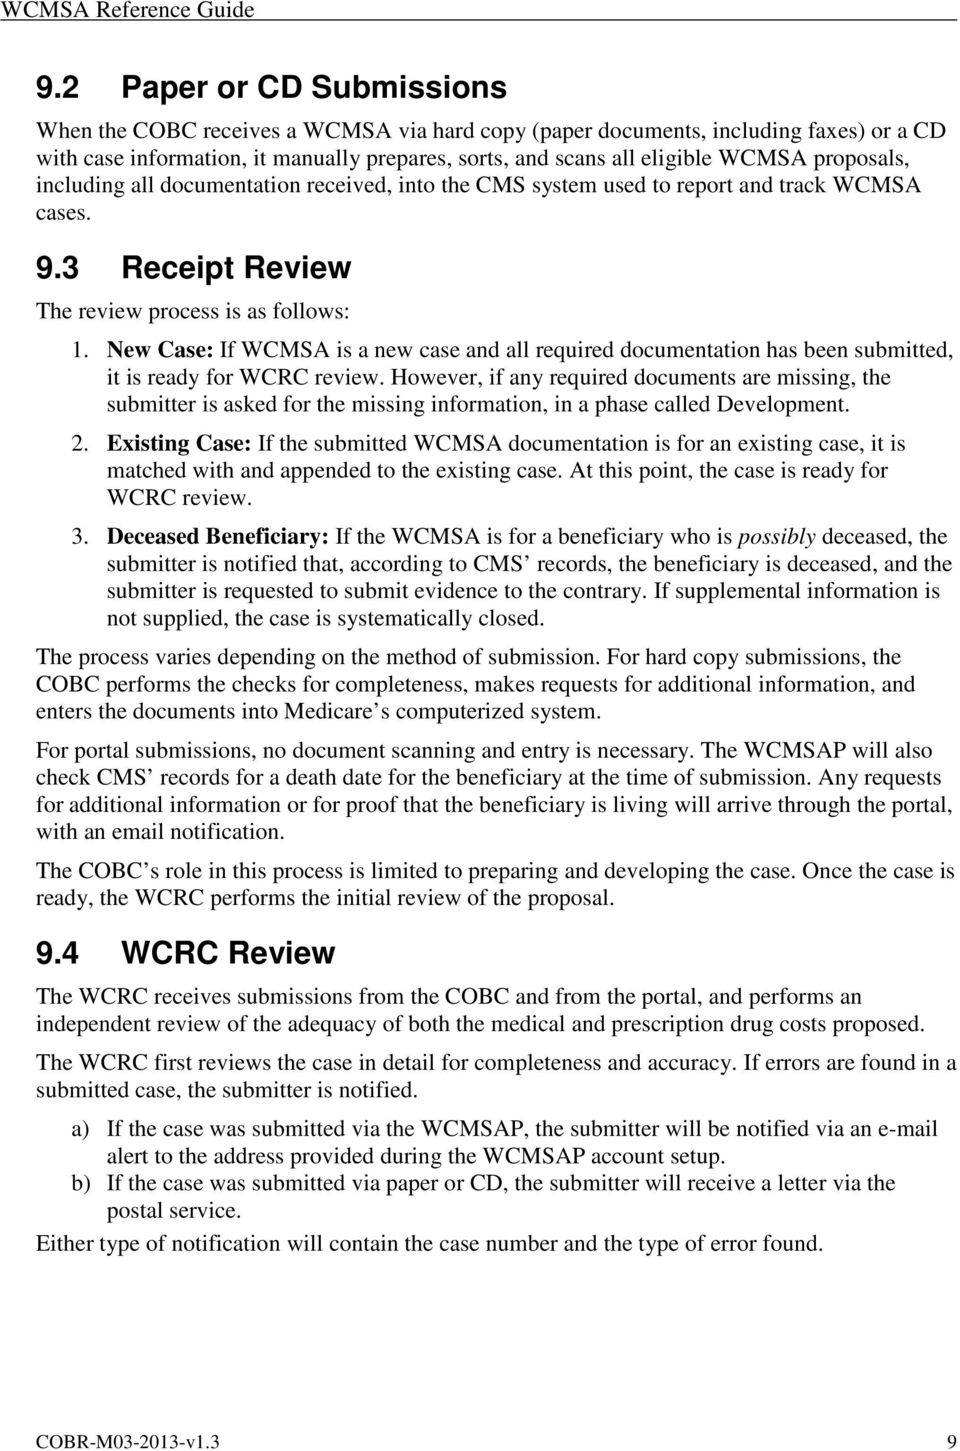 New Case: If WCMSA is a new case and all required documentation has been submitted, it is ready for WCRC review.